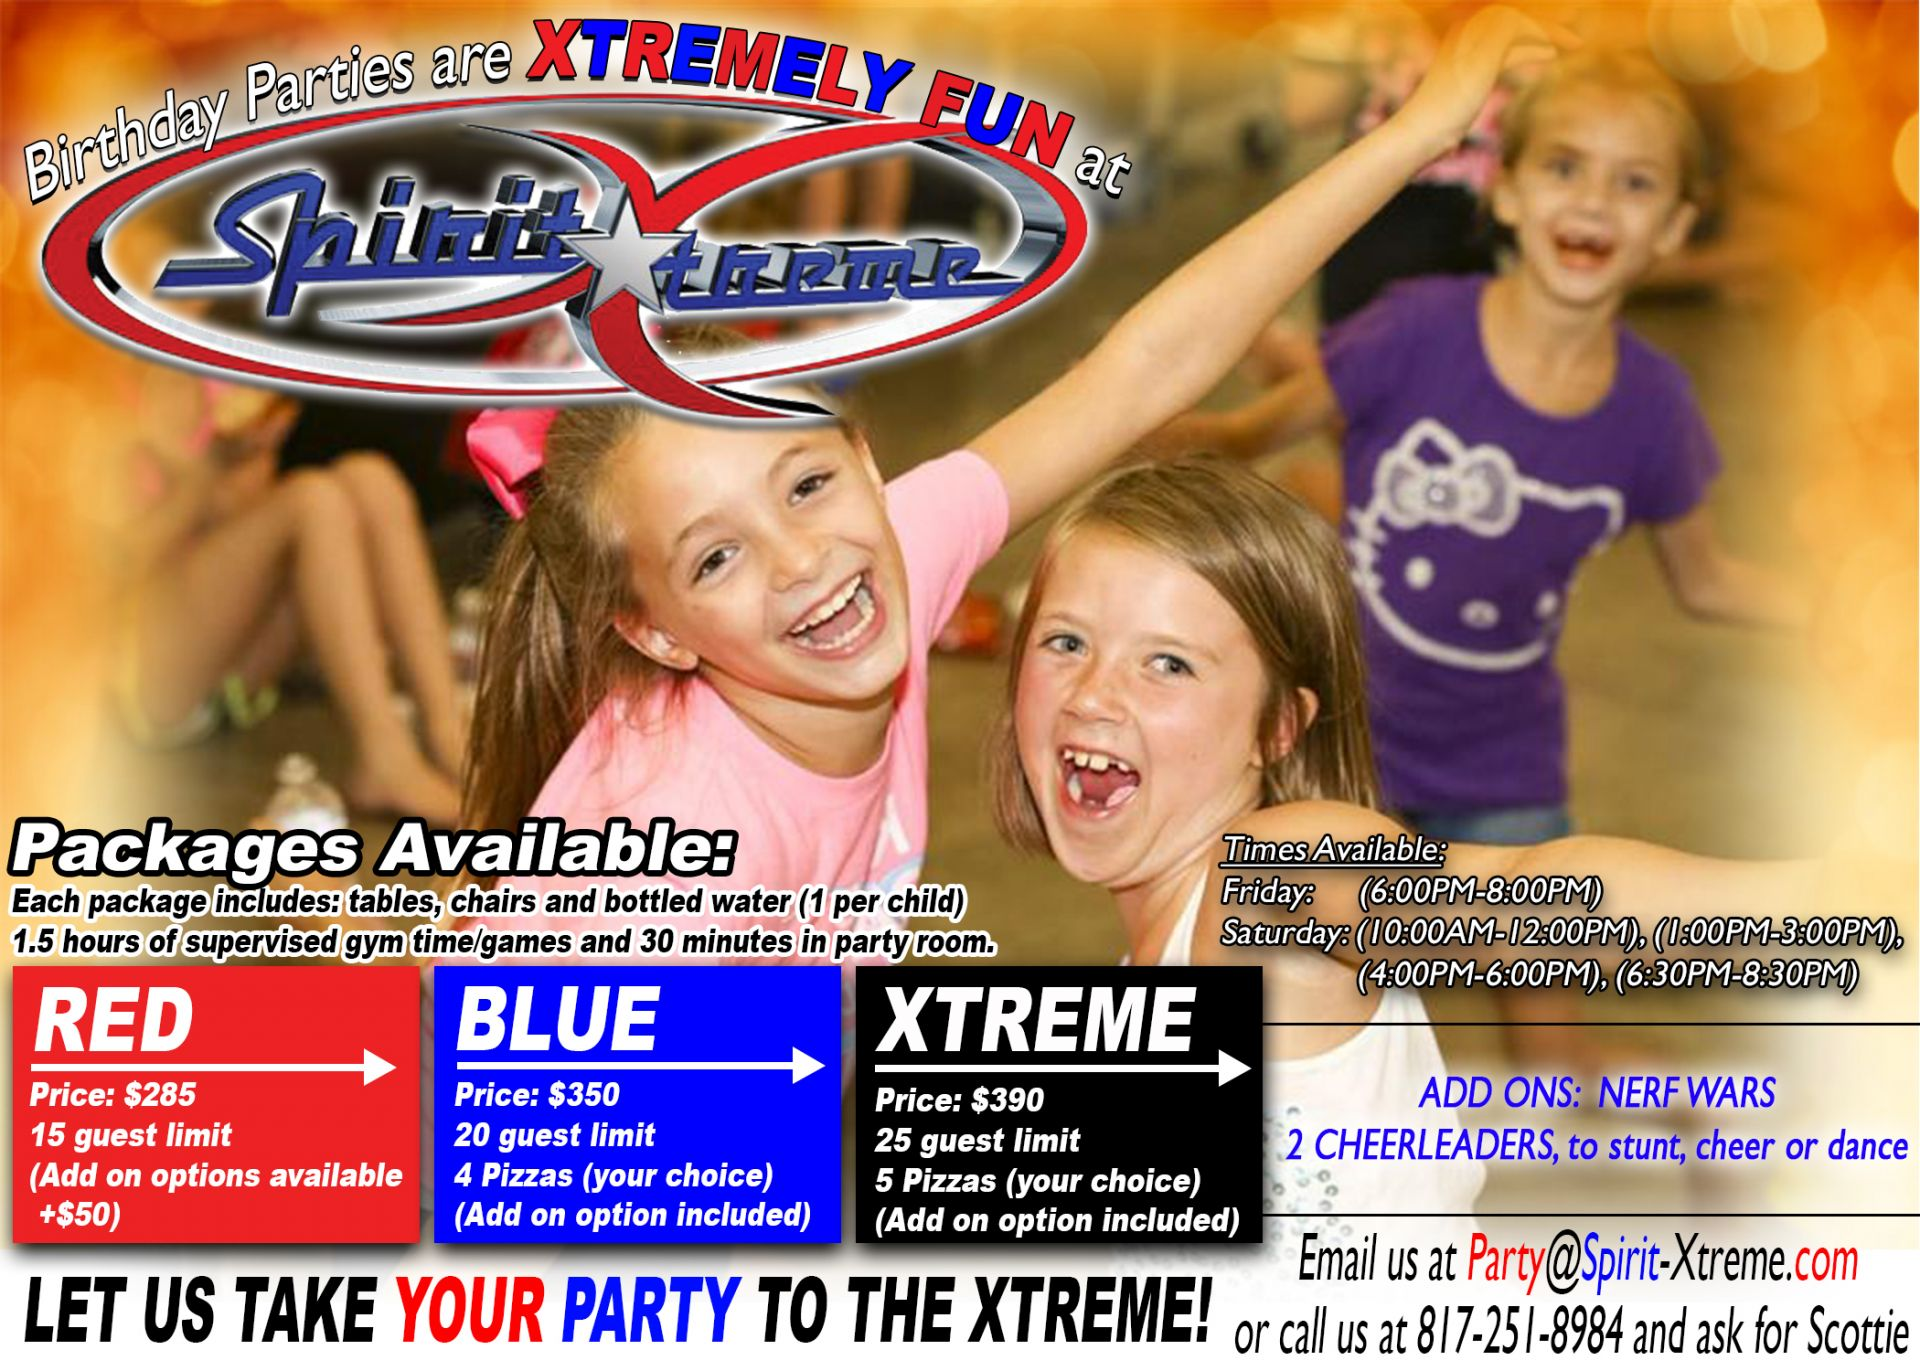 Take your party to the xtreme